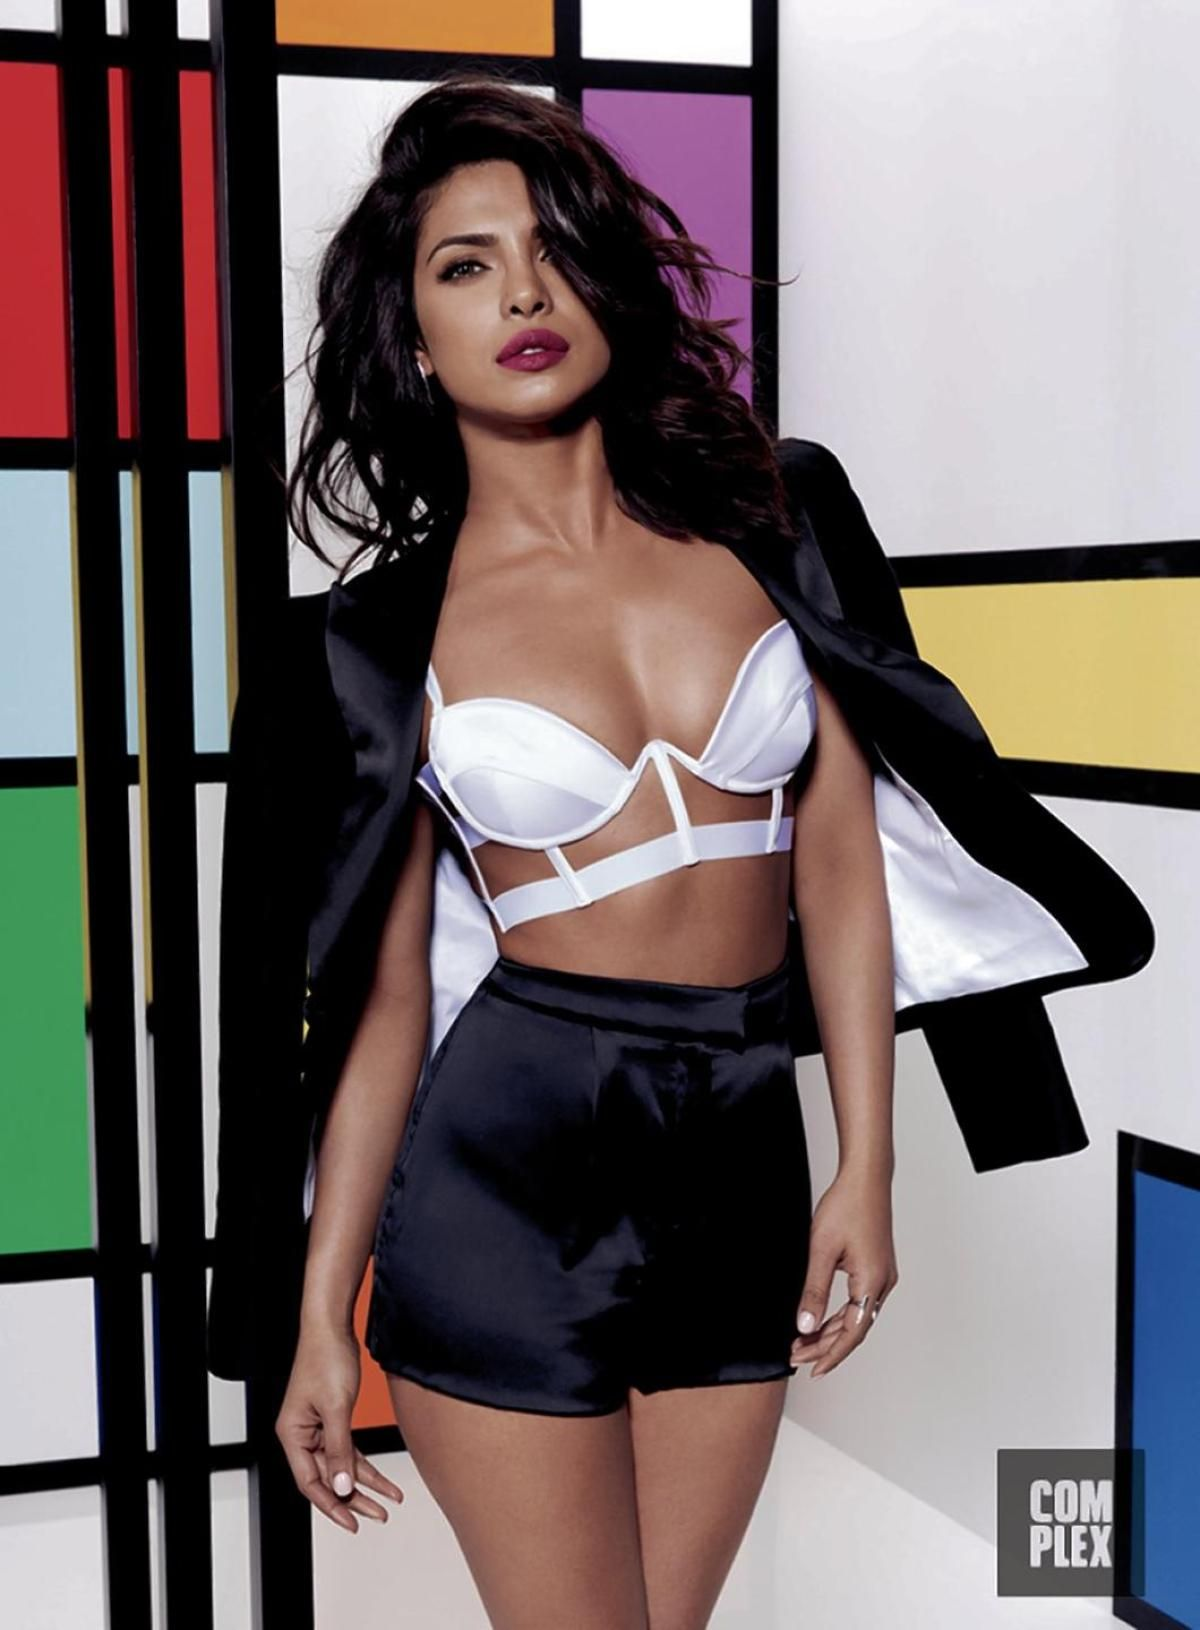 PRIYANKA CHOPRA in Complex Magazine, May 2016 Issue